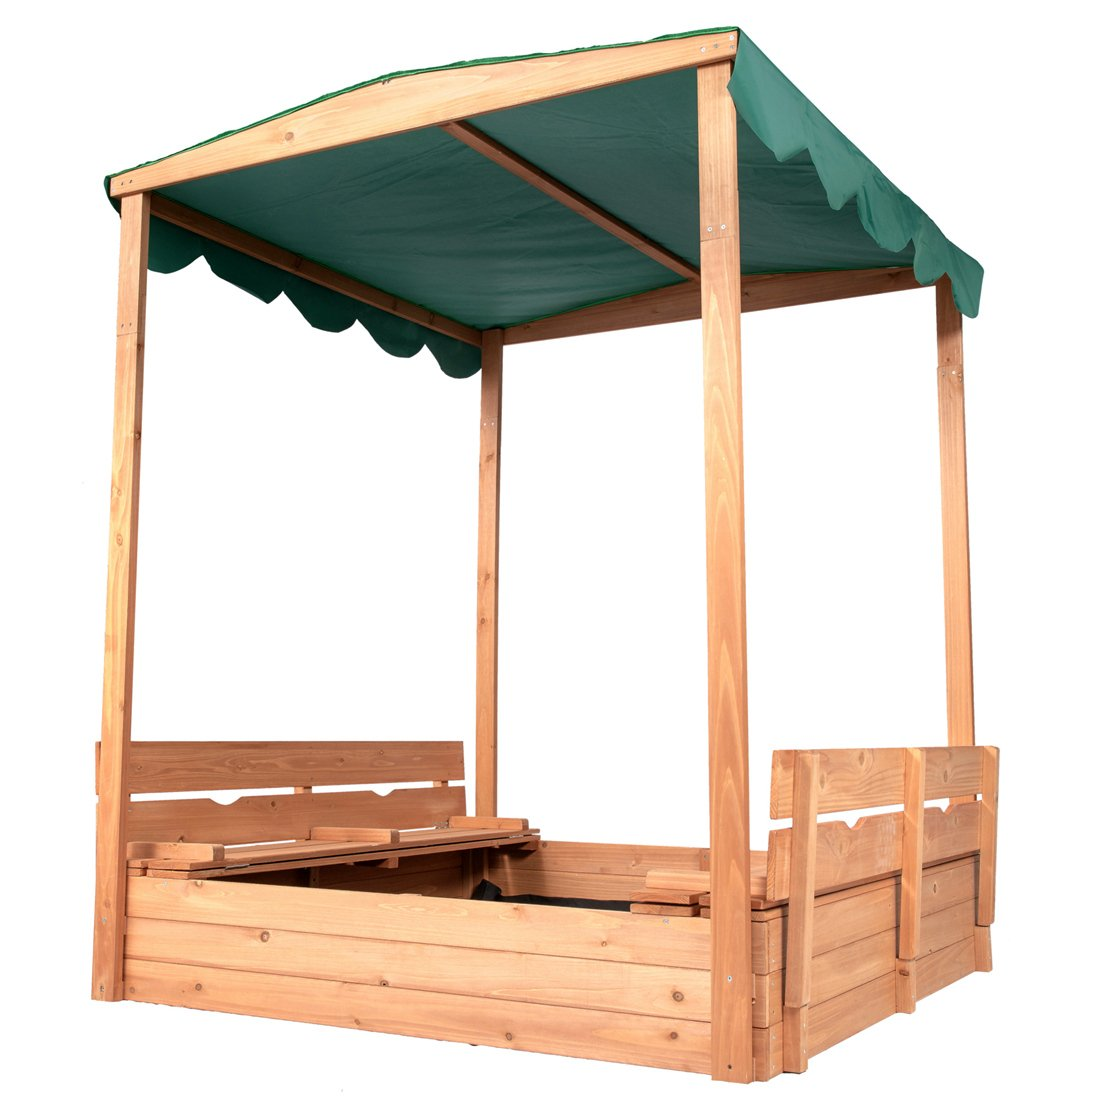 Good Life Outdoor Canopy Sandbox with Covered and Bench Seats Kids Play Sand for Sand Box Toys Wood Natural Color 47'' x 47'' Size by Good Life USA